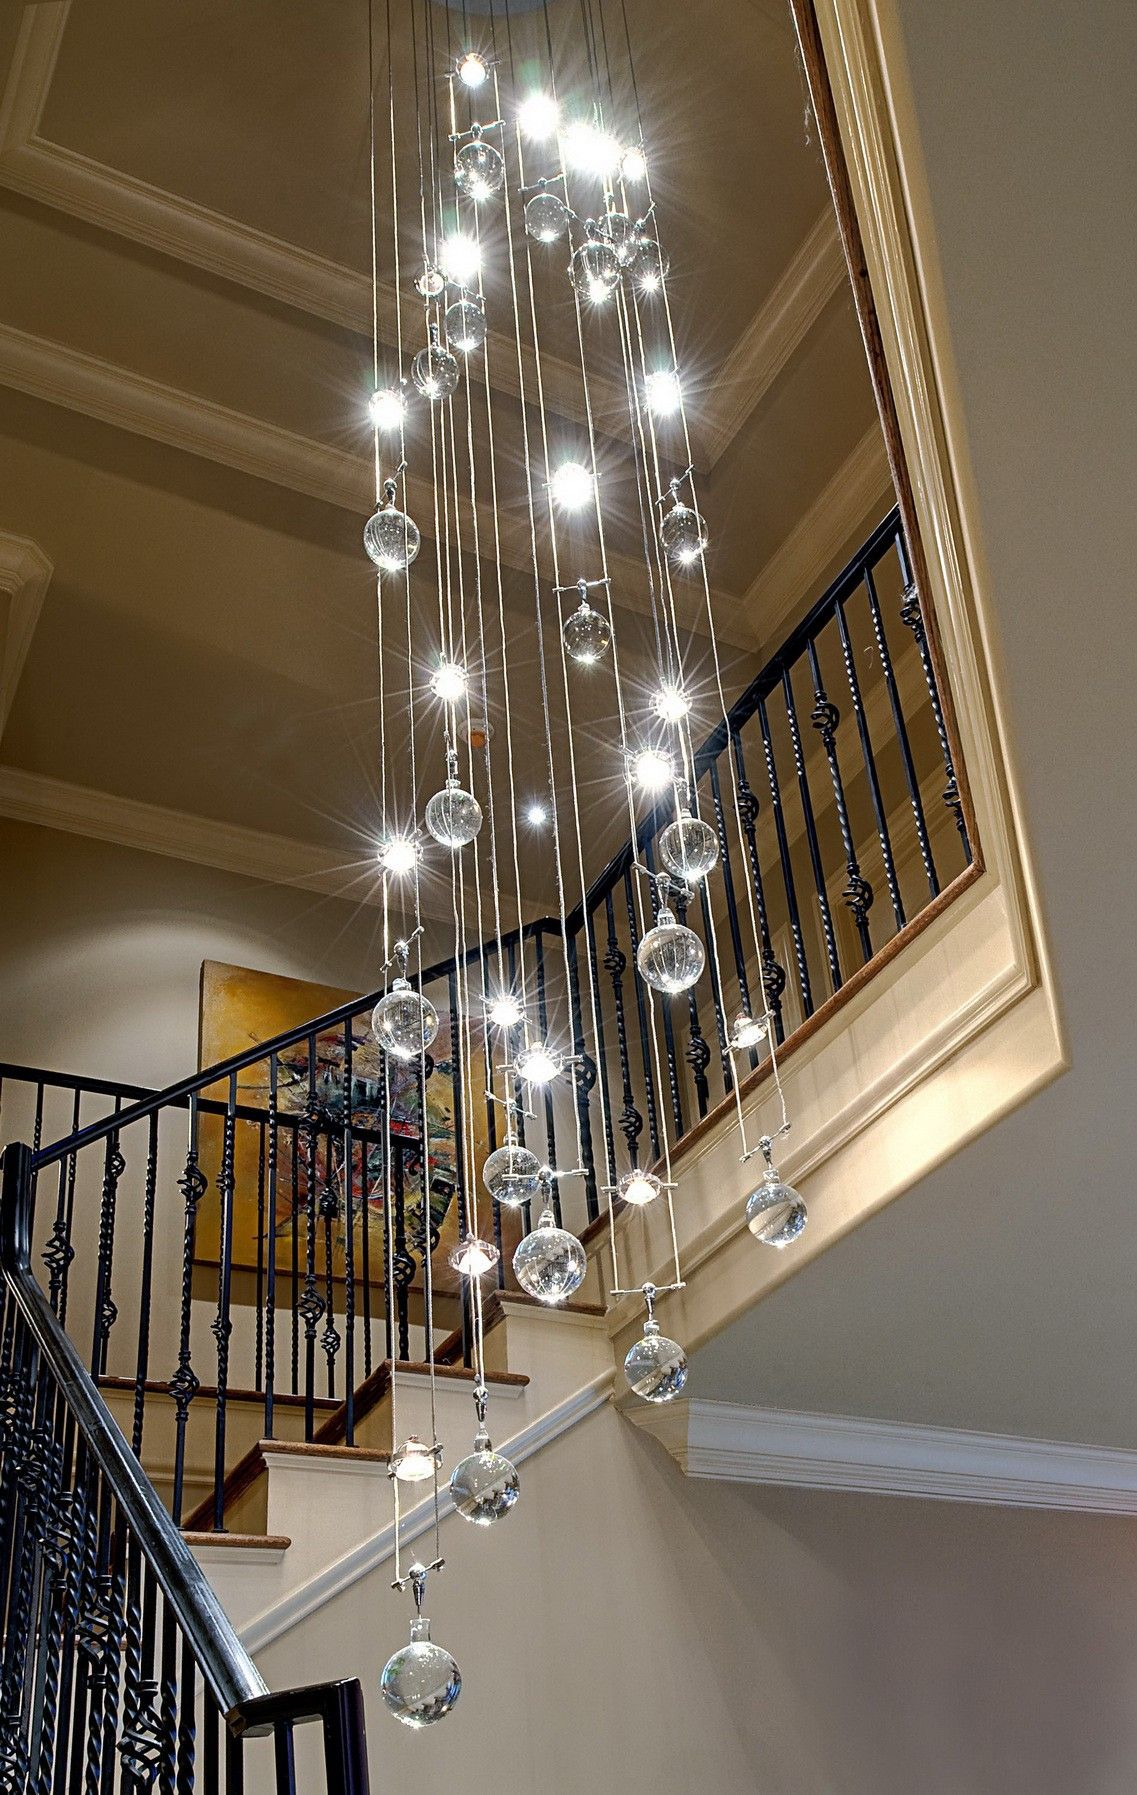 Images Of Foyer Lighting : Greet your guest with dazzling foyer chandeliers cool